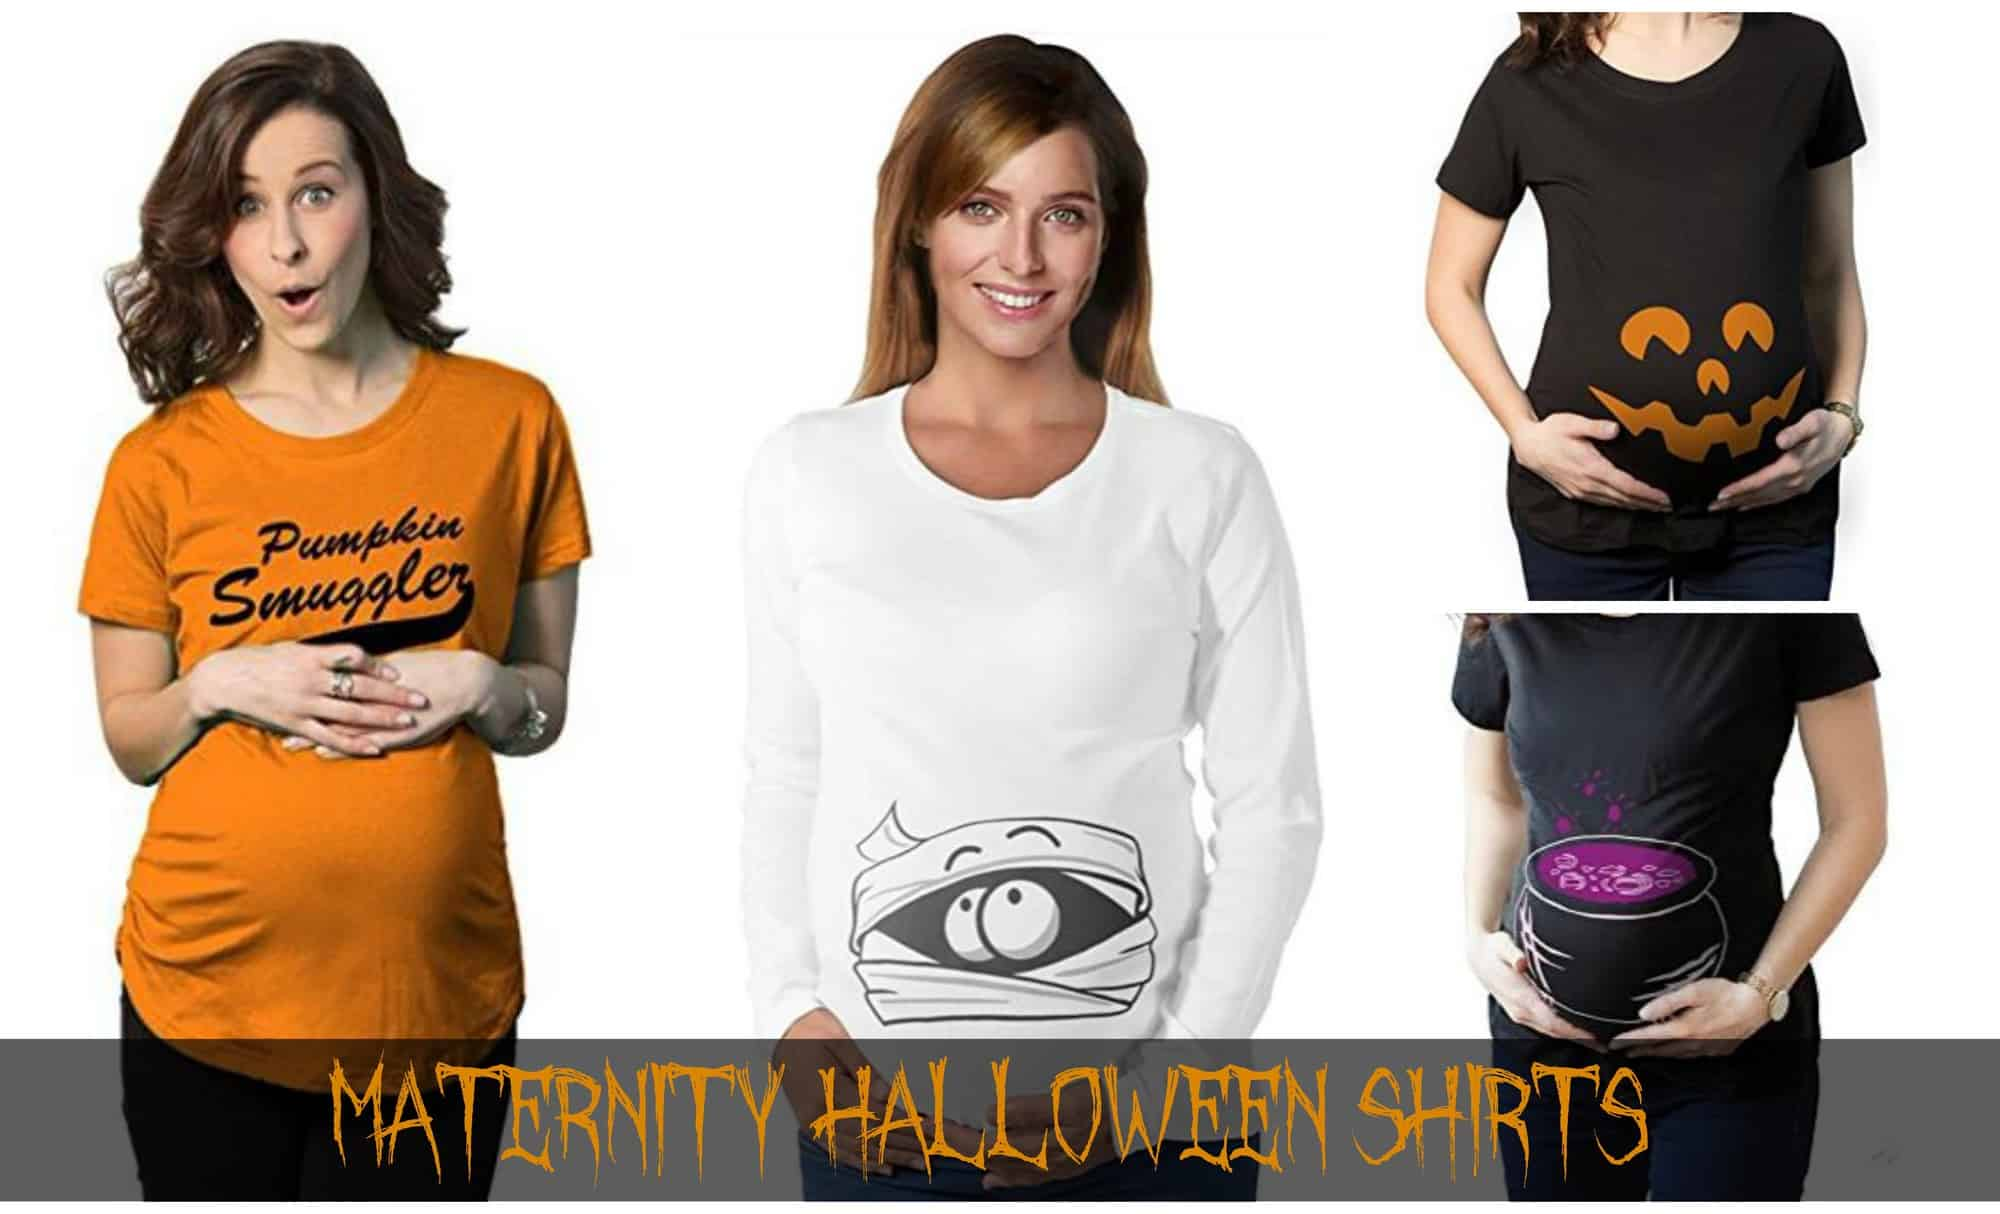 Maternity Halloween Shirts via LittleMissKate.ca